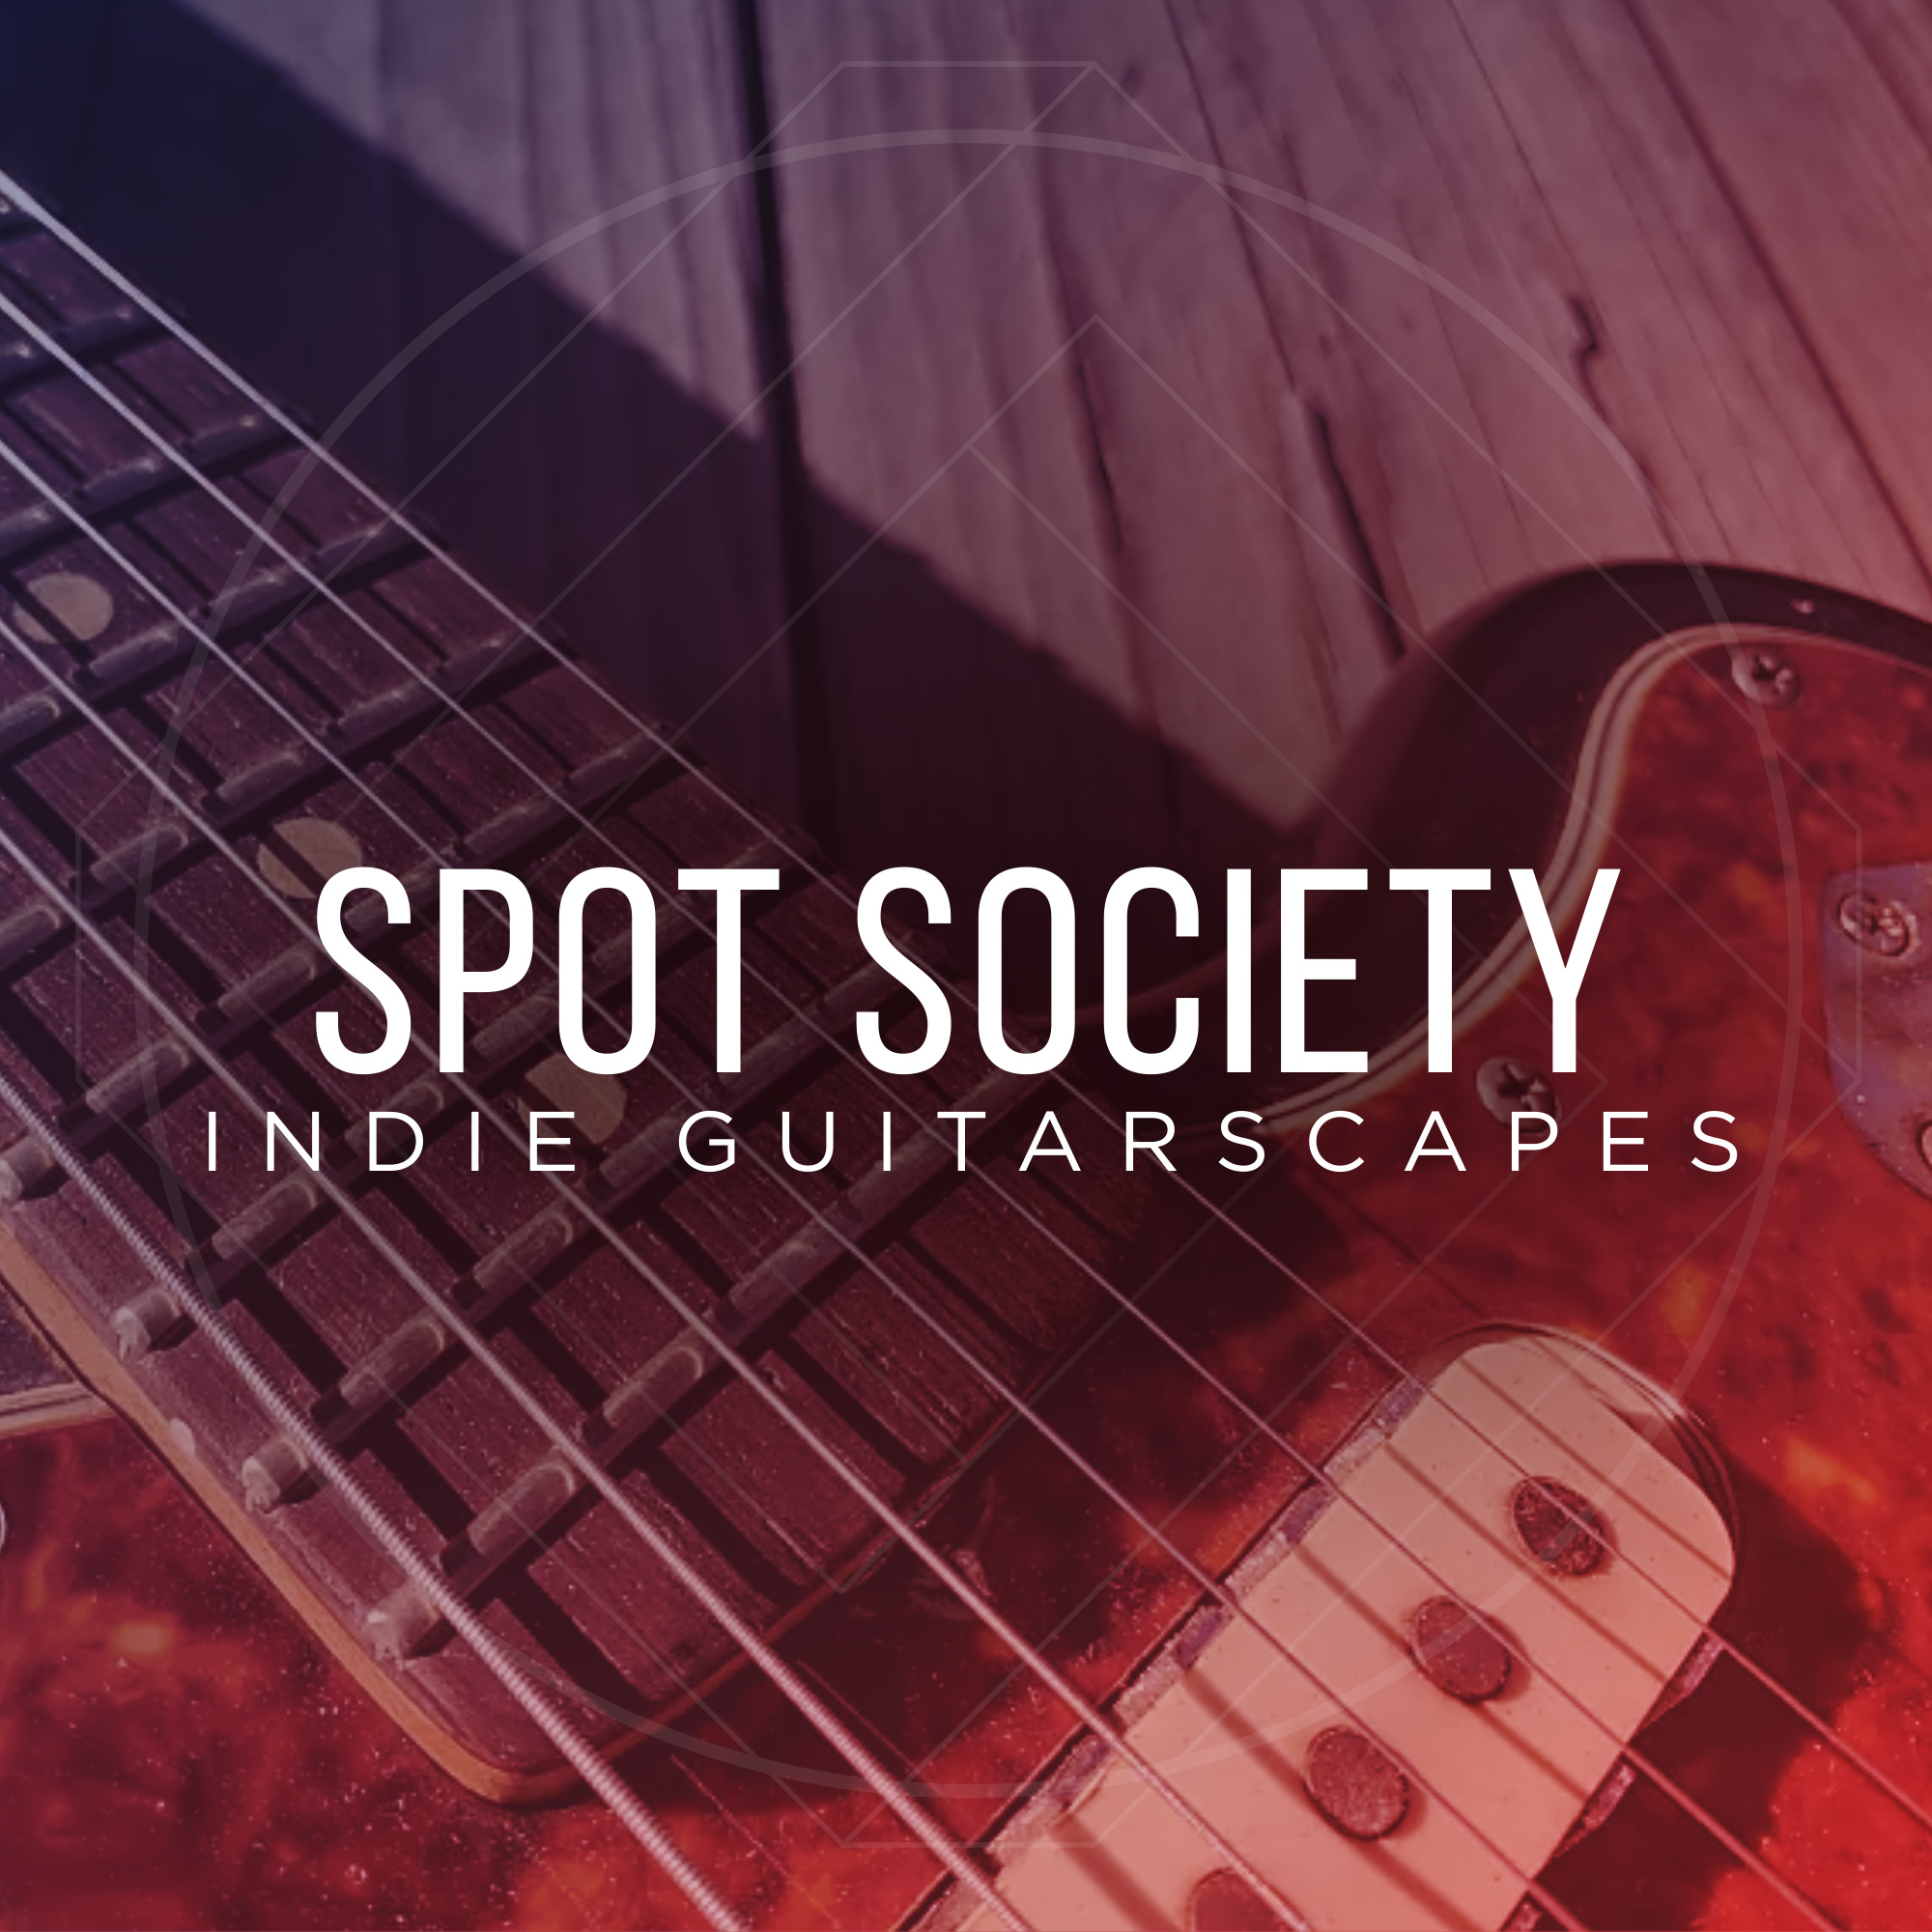 Indie Guitarscapes